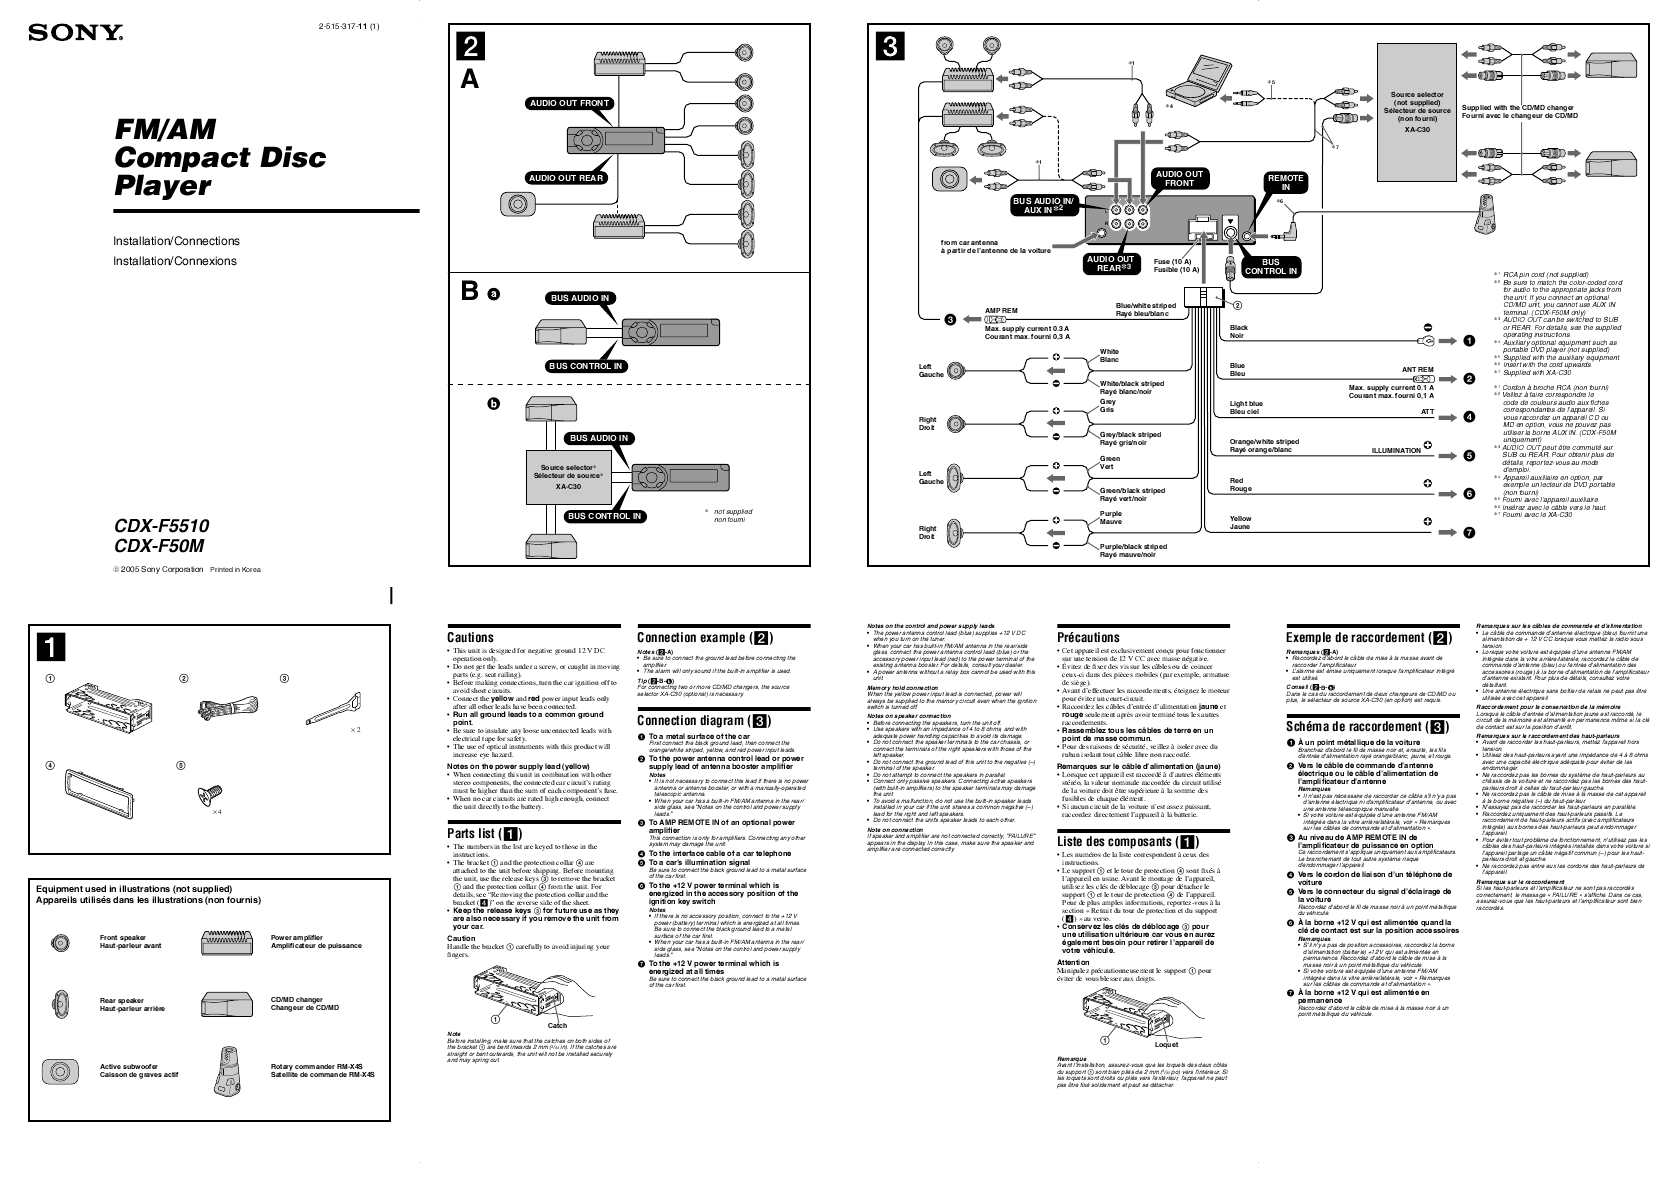 32d2453d 0ee5 f264 a1d6 965a42b33db0 000001?resize\=665%2C472 sony cdx gt300 wiring diagram sony stereo wire harness diagram  at n-0.co